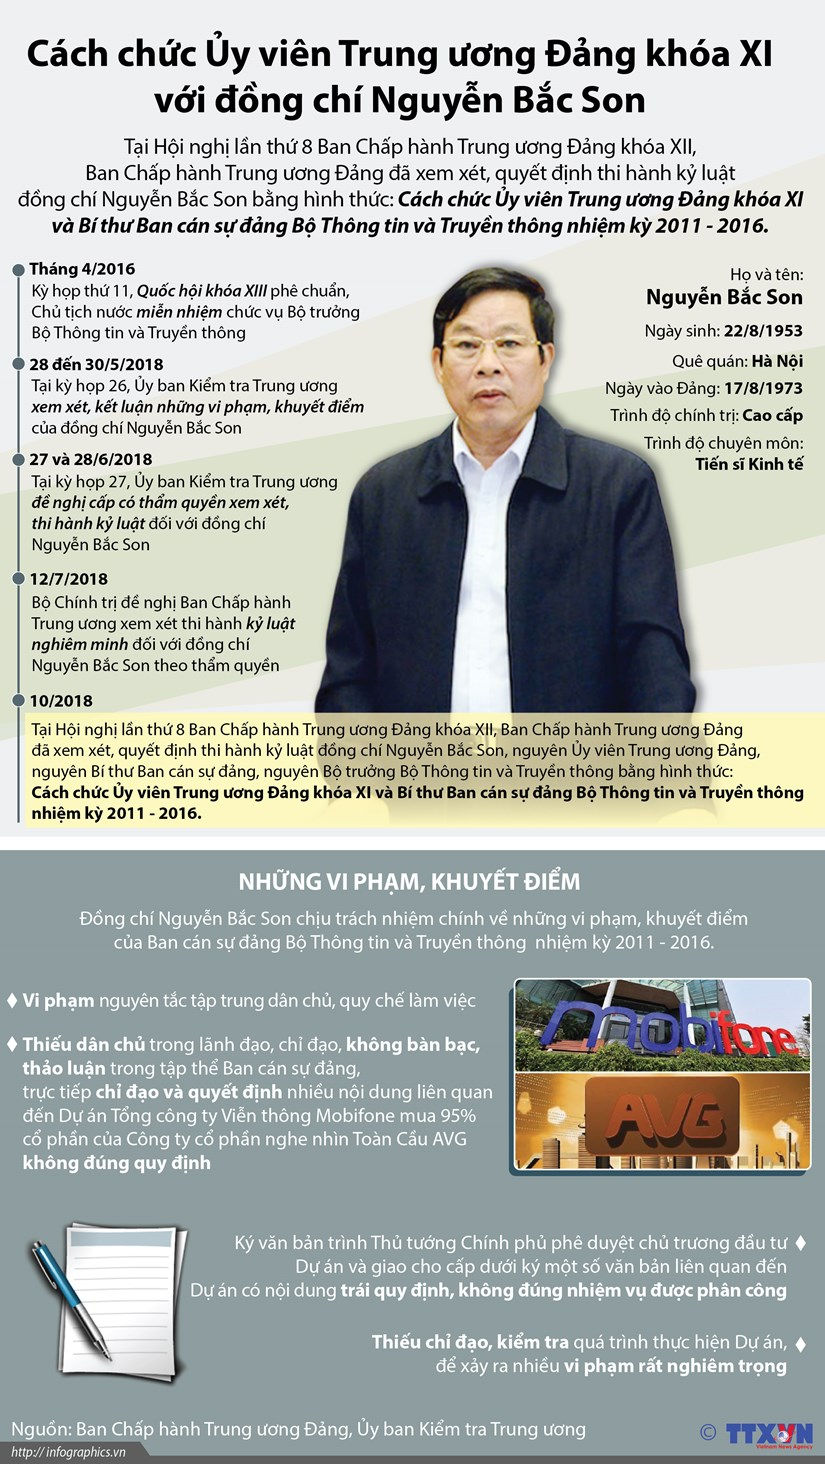 [Infographics] Cach chuc Uy vien TW Dang voi ong Nguyen Bac Son hinh anh 1